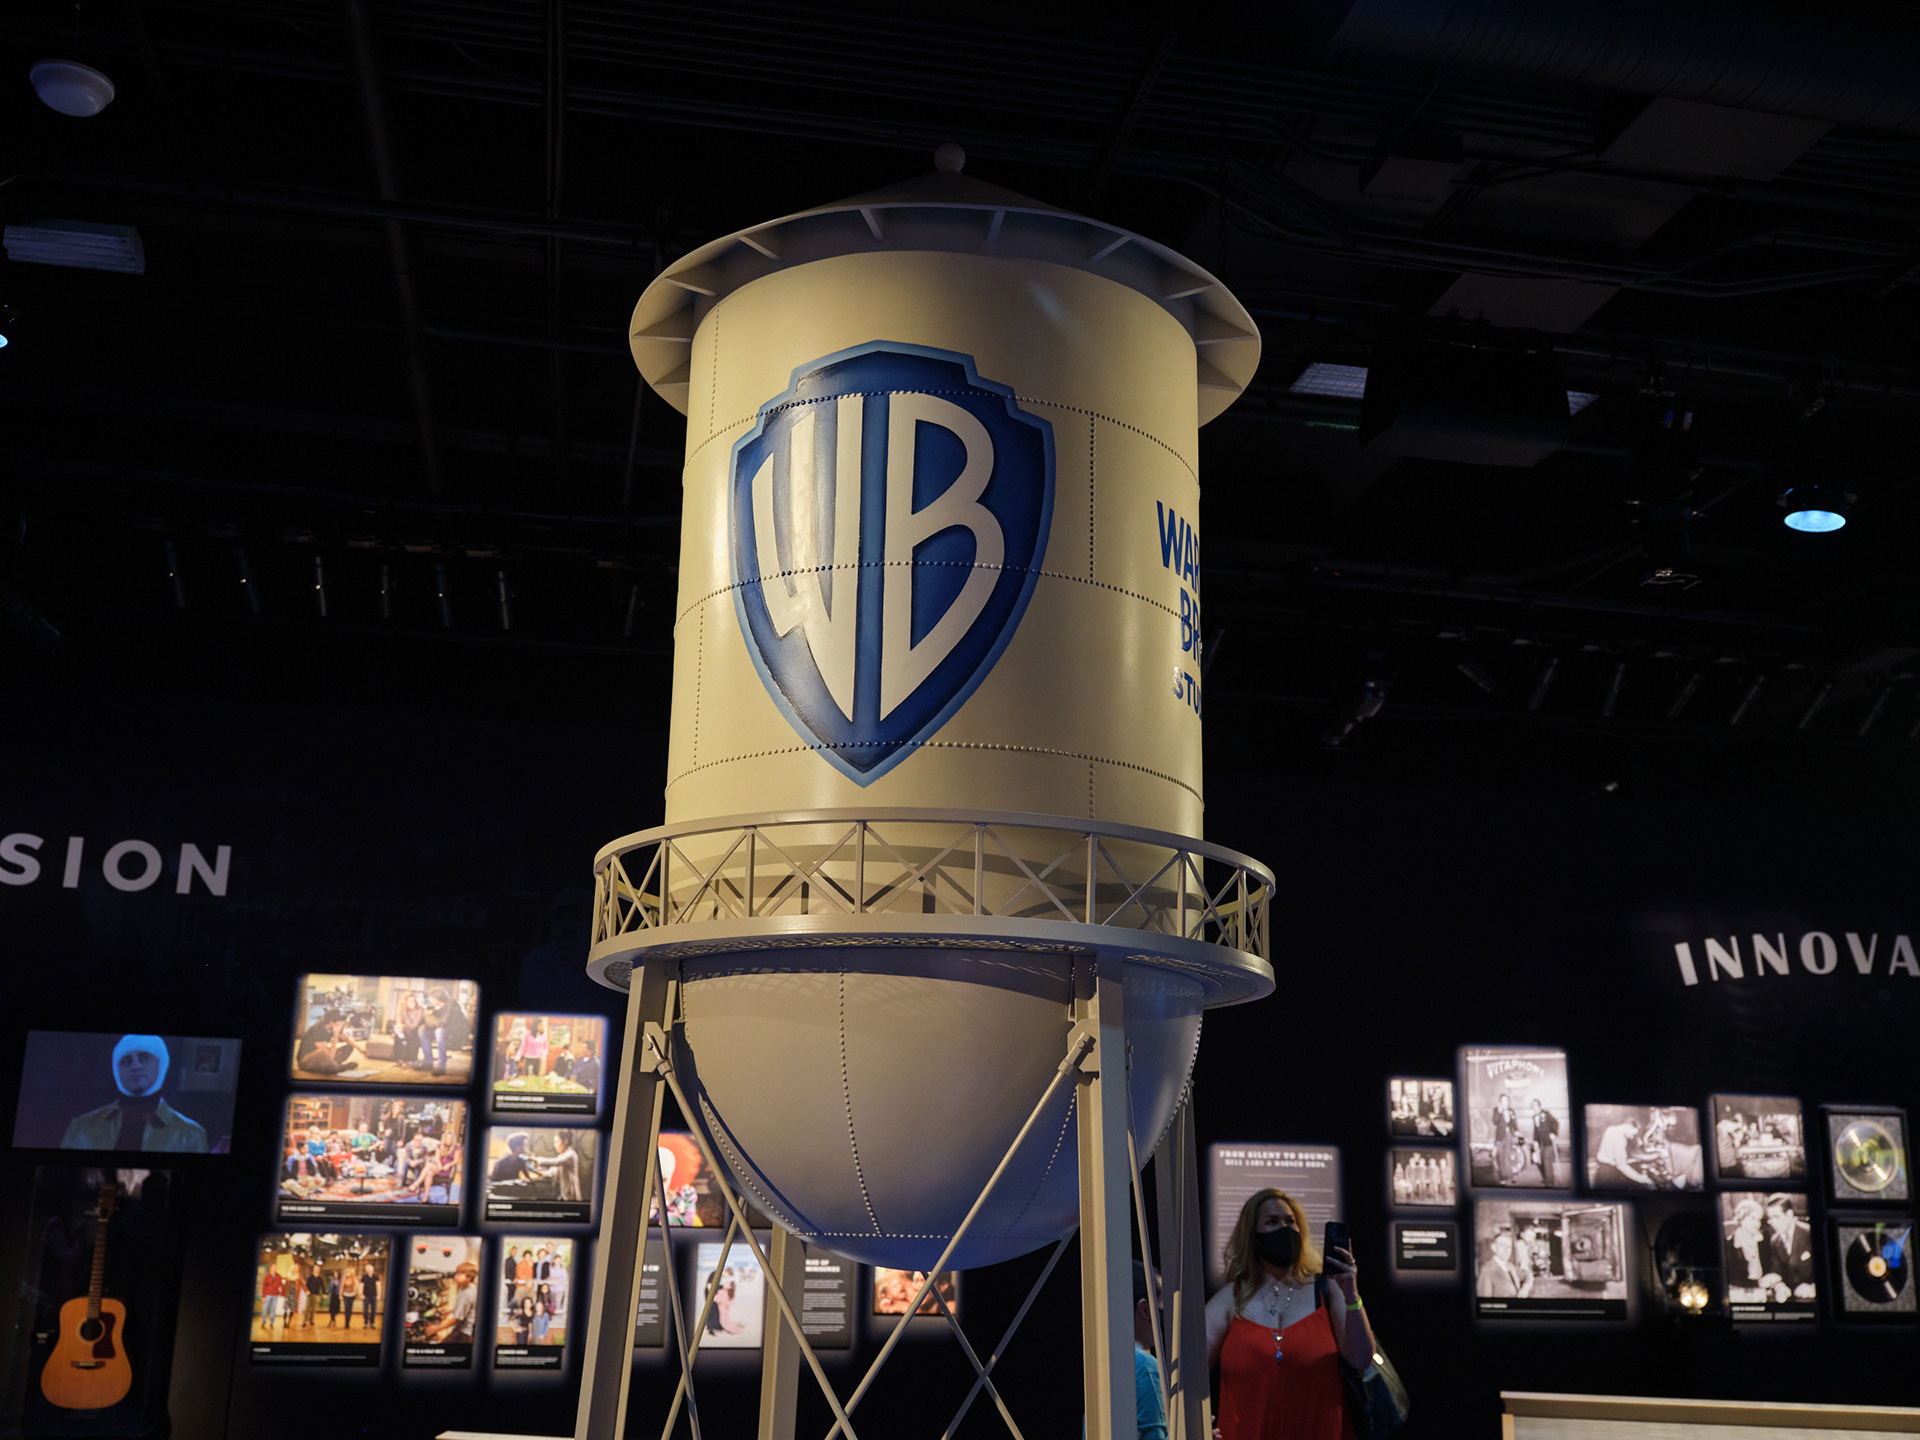 a-local-tour-through-entertainment-history-1-warner-bros-wb-water-tower